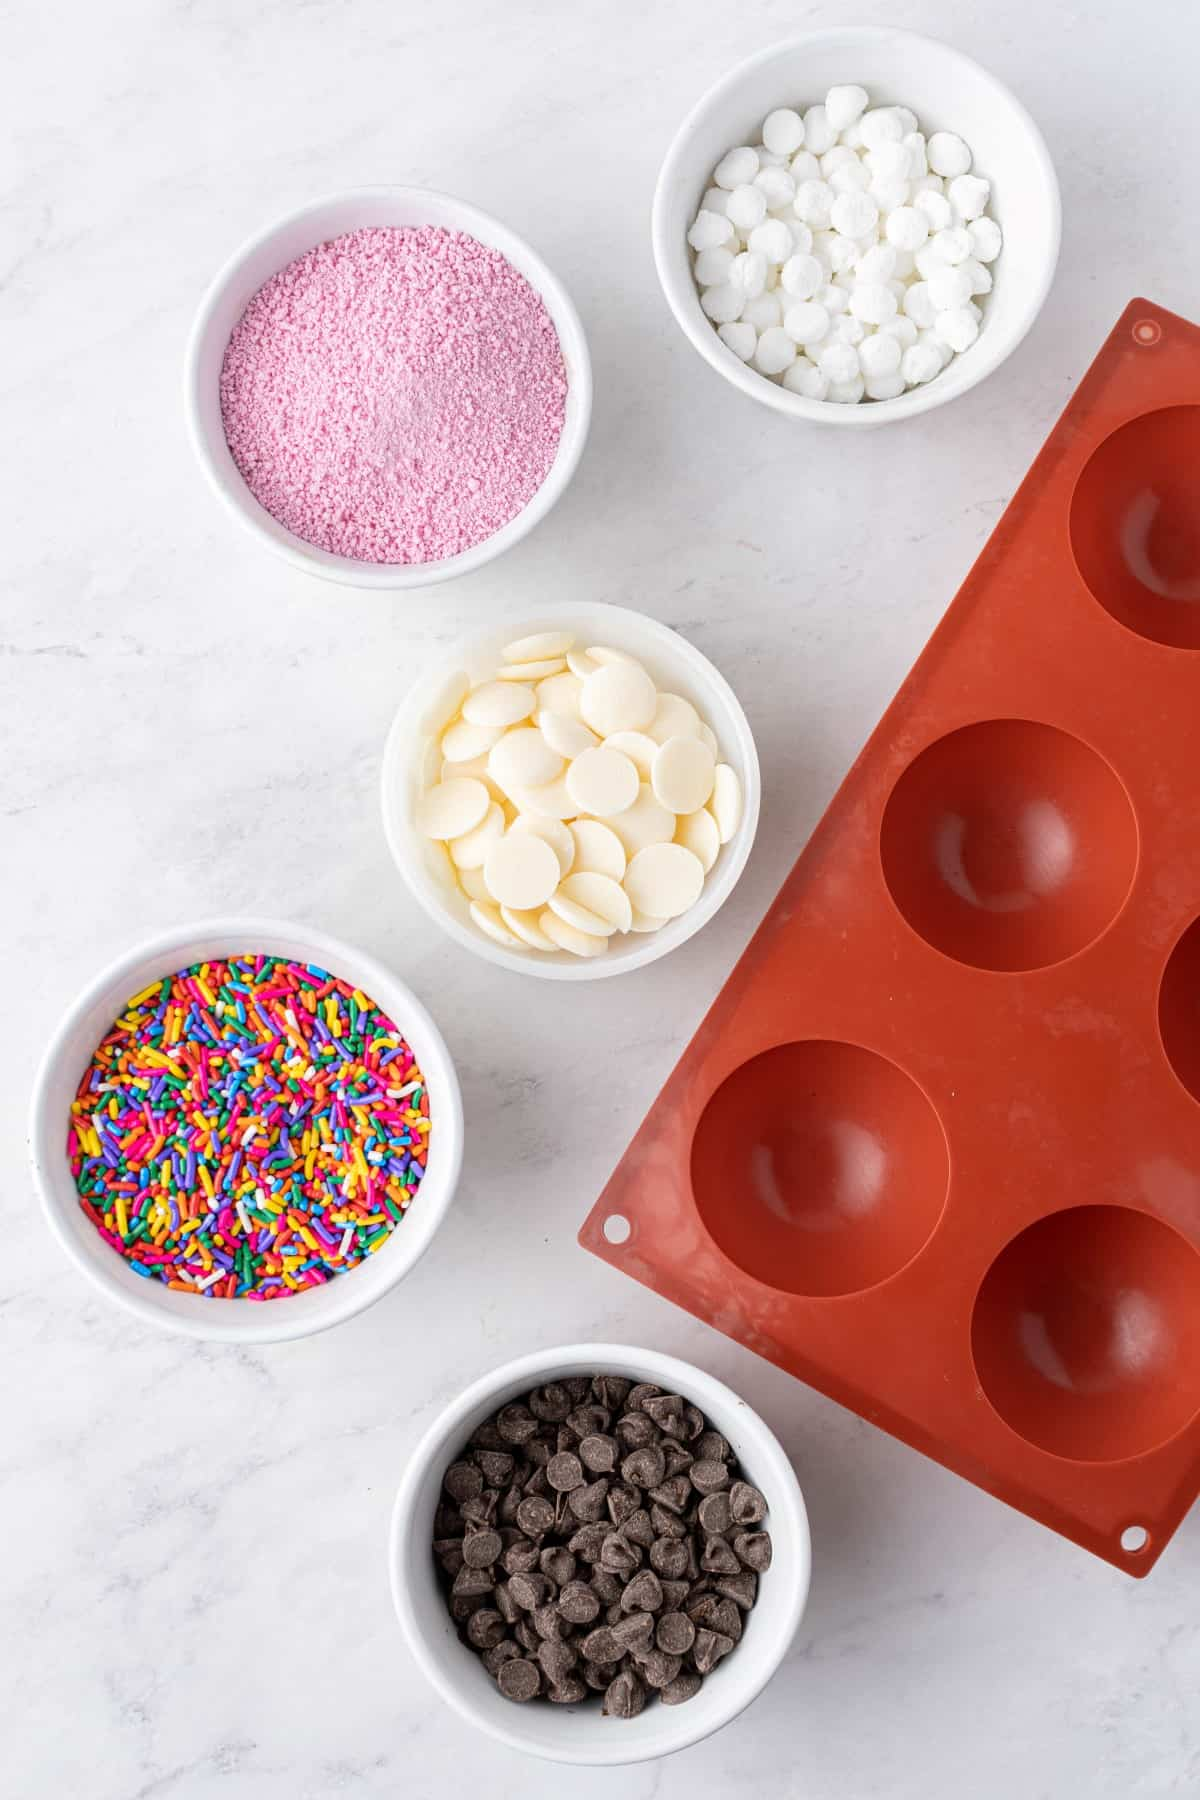 Ingredients for Funfetti Hot Chocolate Bombs